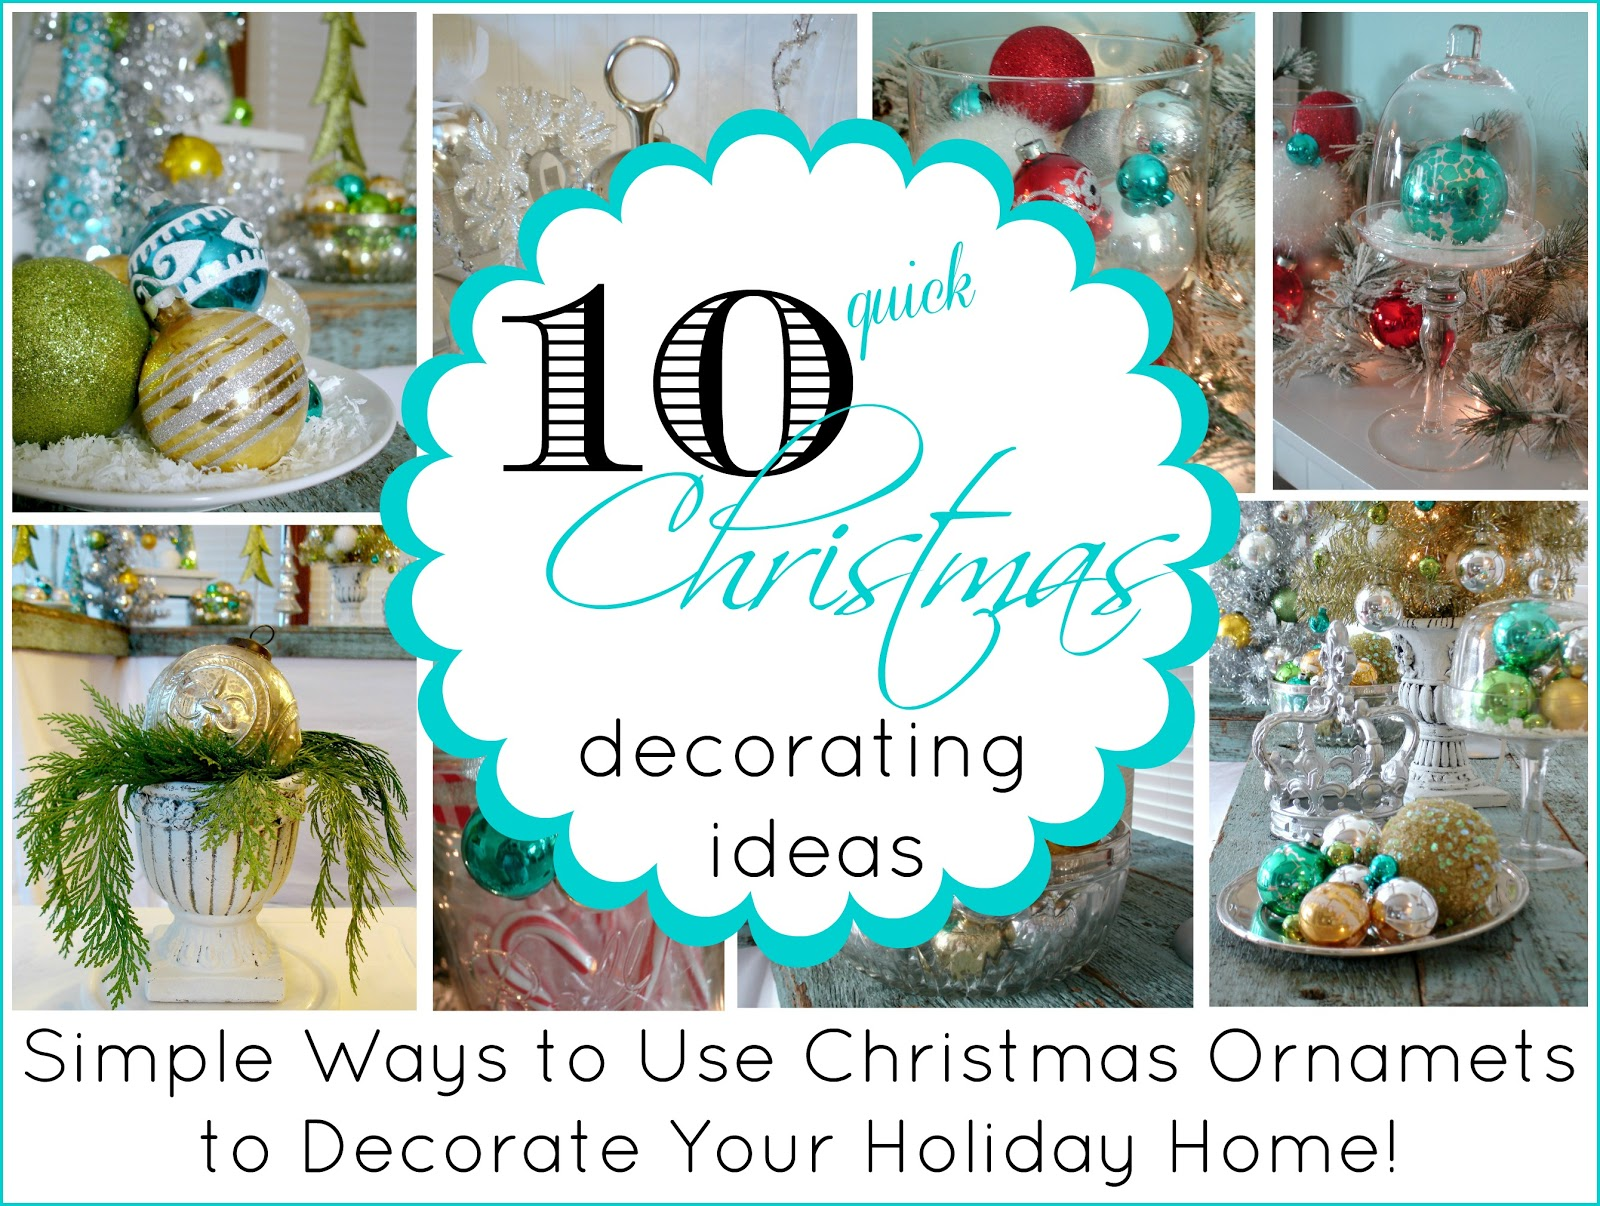 Quick Decorating Ideas 10 quick ideas for decorating with christmas ornaments - fox